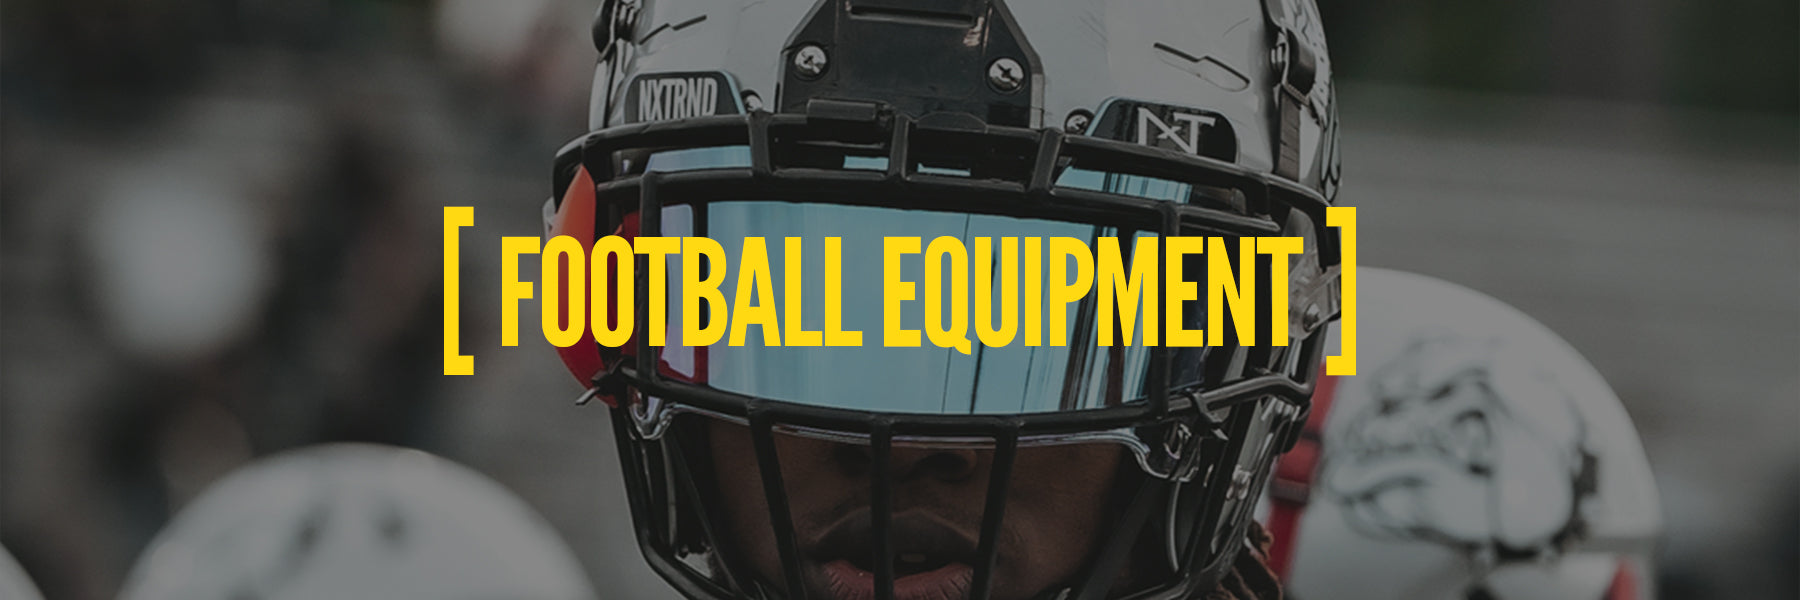 Football Accessories and Gear